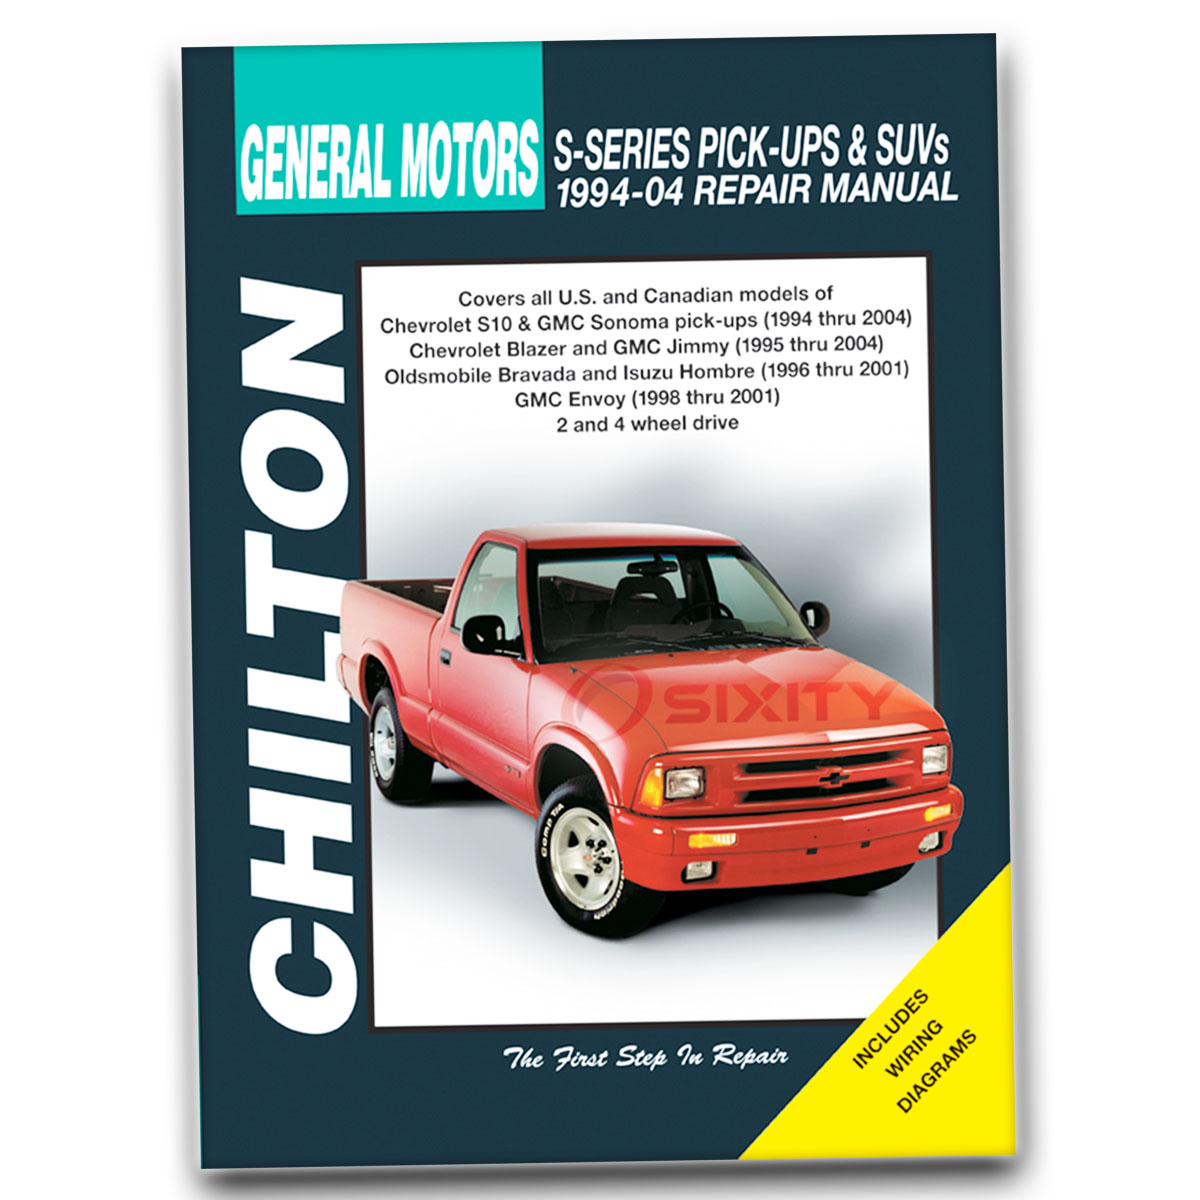 chevy s10 blazer chilton repair manual tahoe lt base shop service rh ebay com 1993 chevy s10 blazer repair manual 1991 chevy s10 blazer repair manual